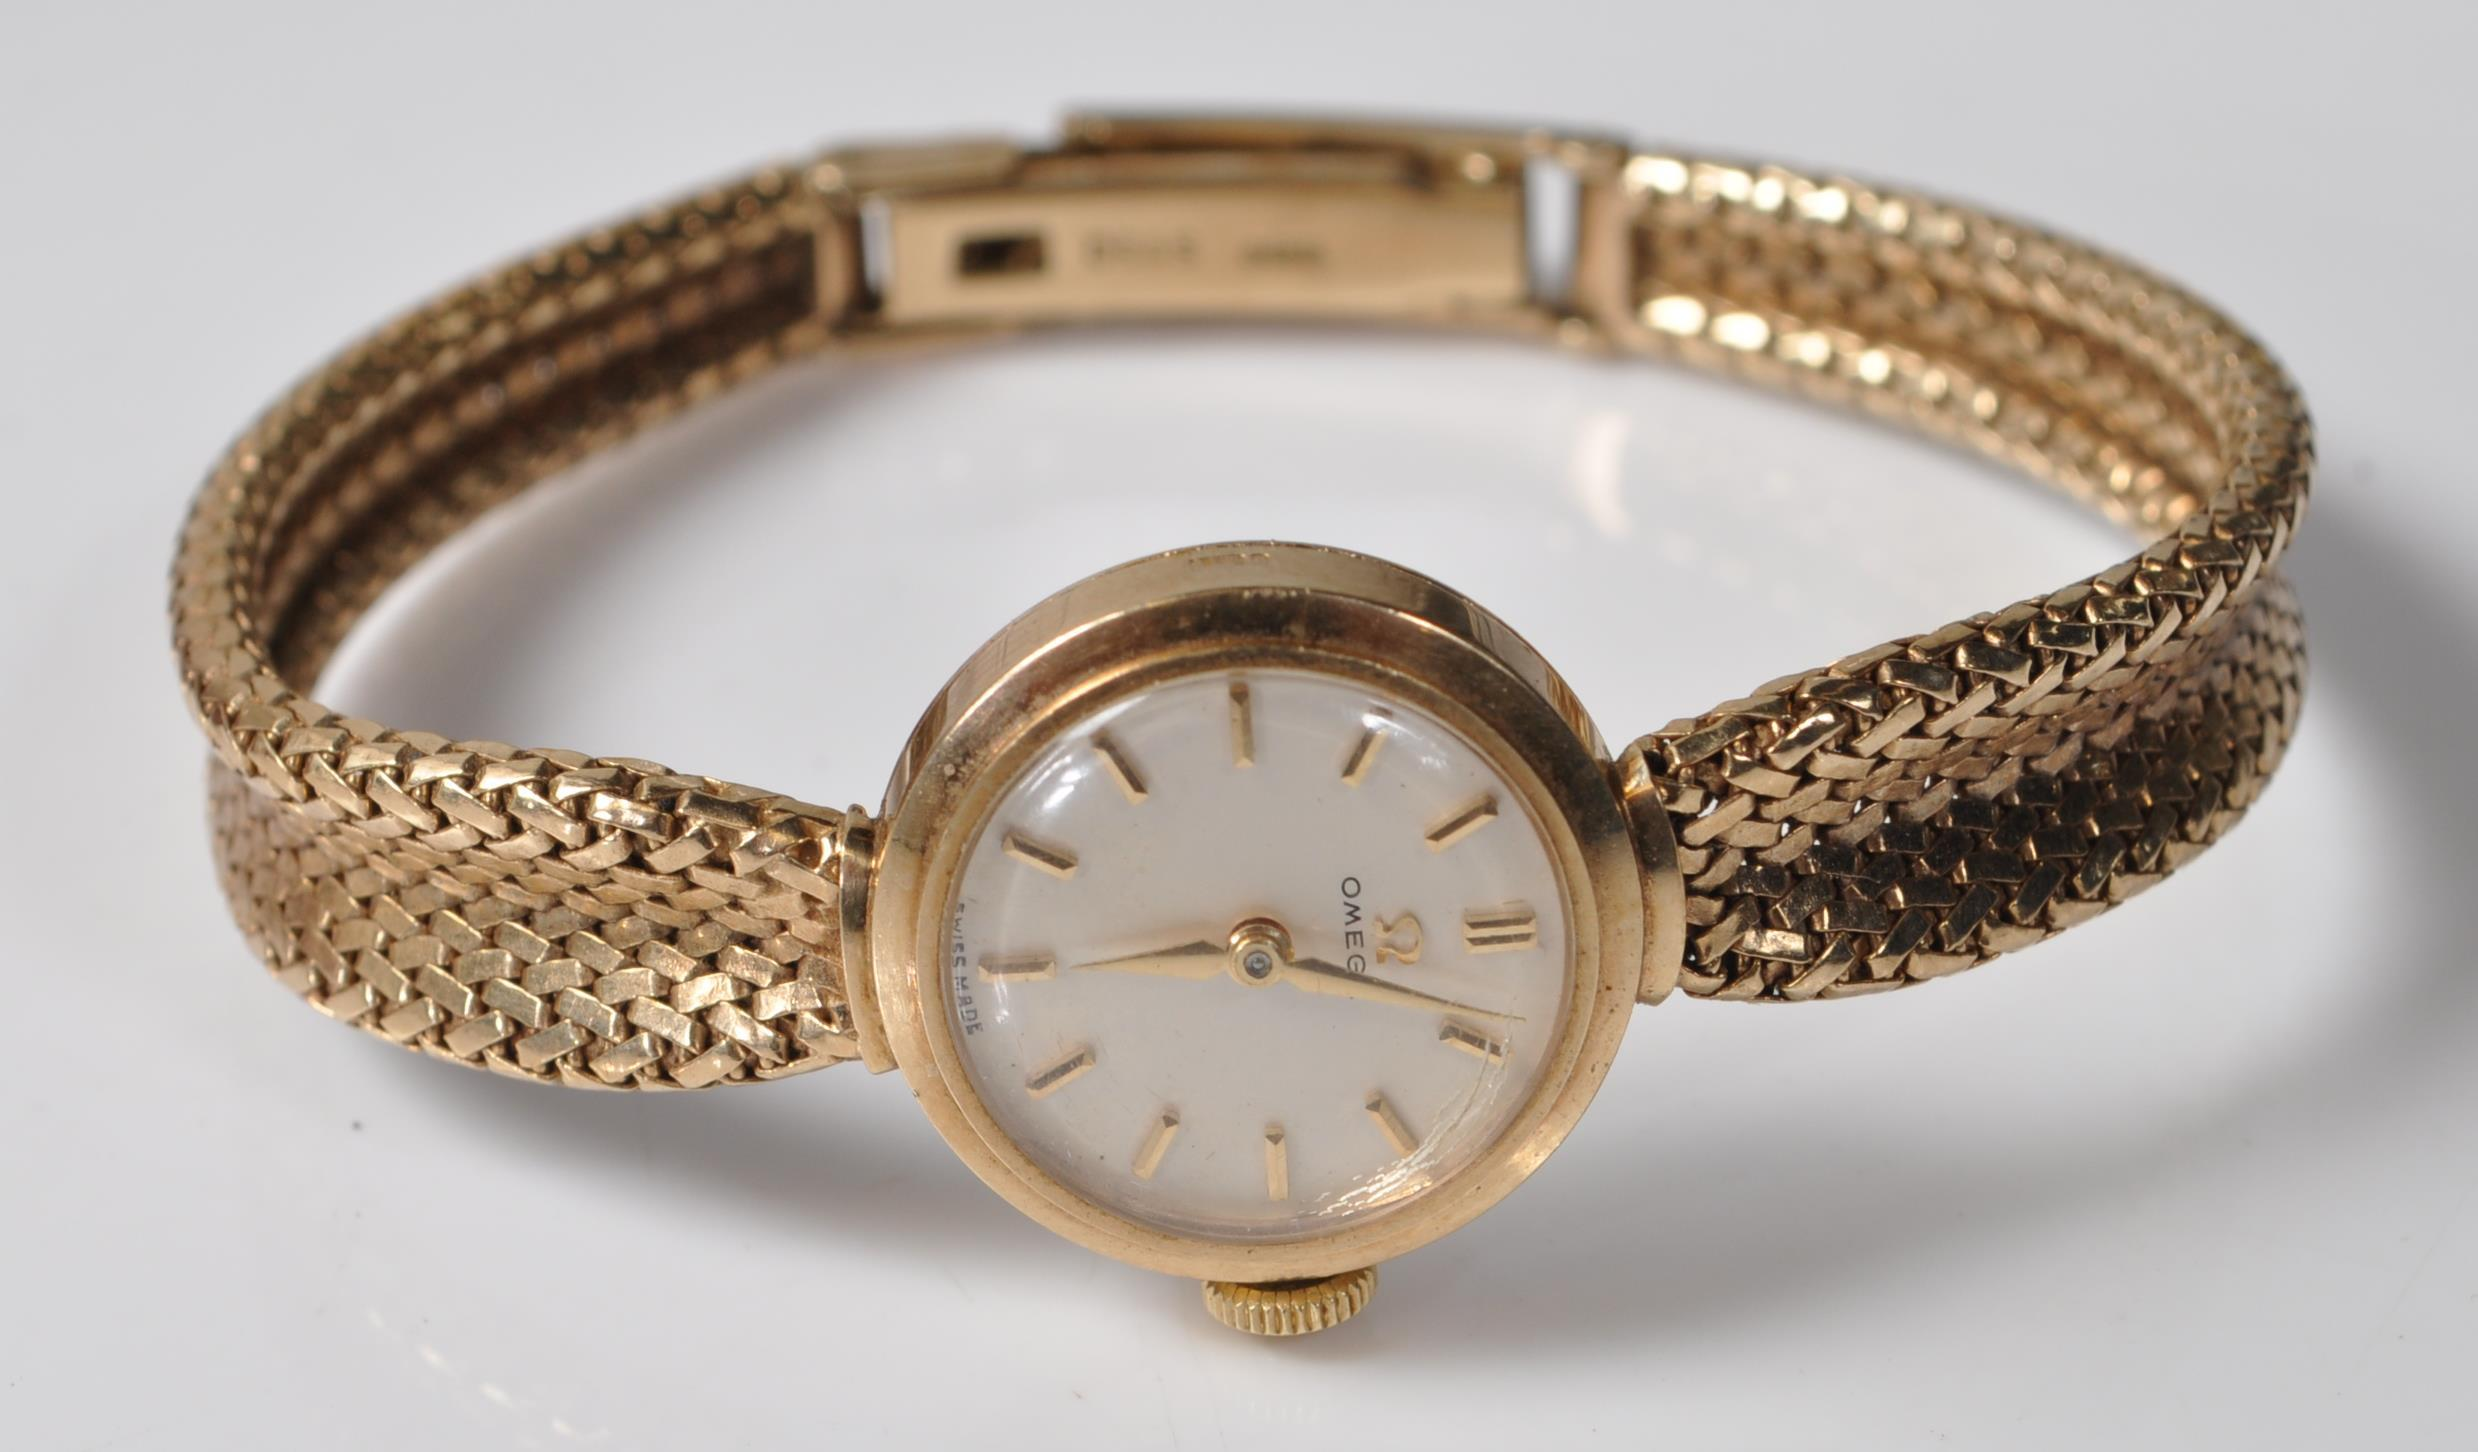 9CT GOLD OMEGA LADIES WATCH - Image 2 of 15